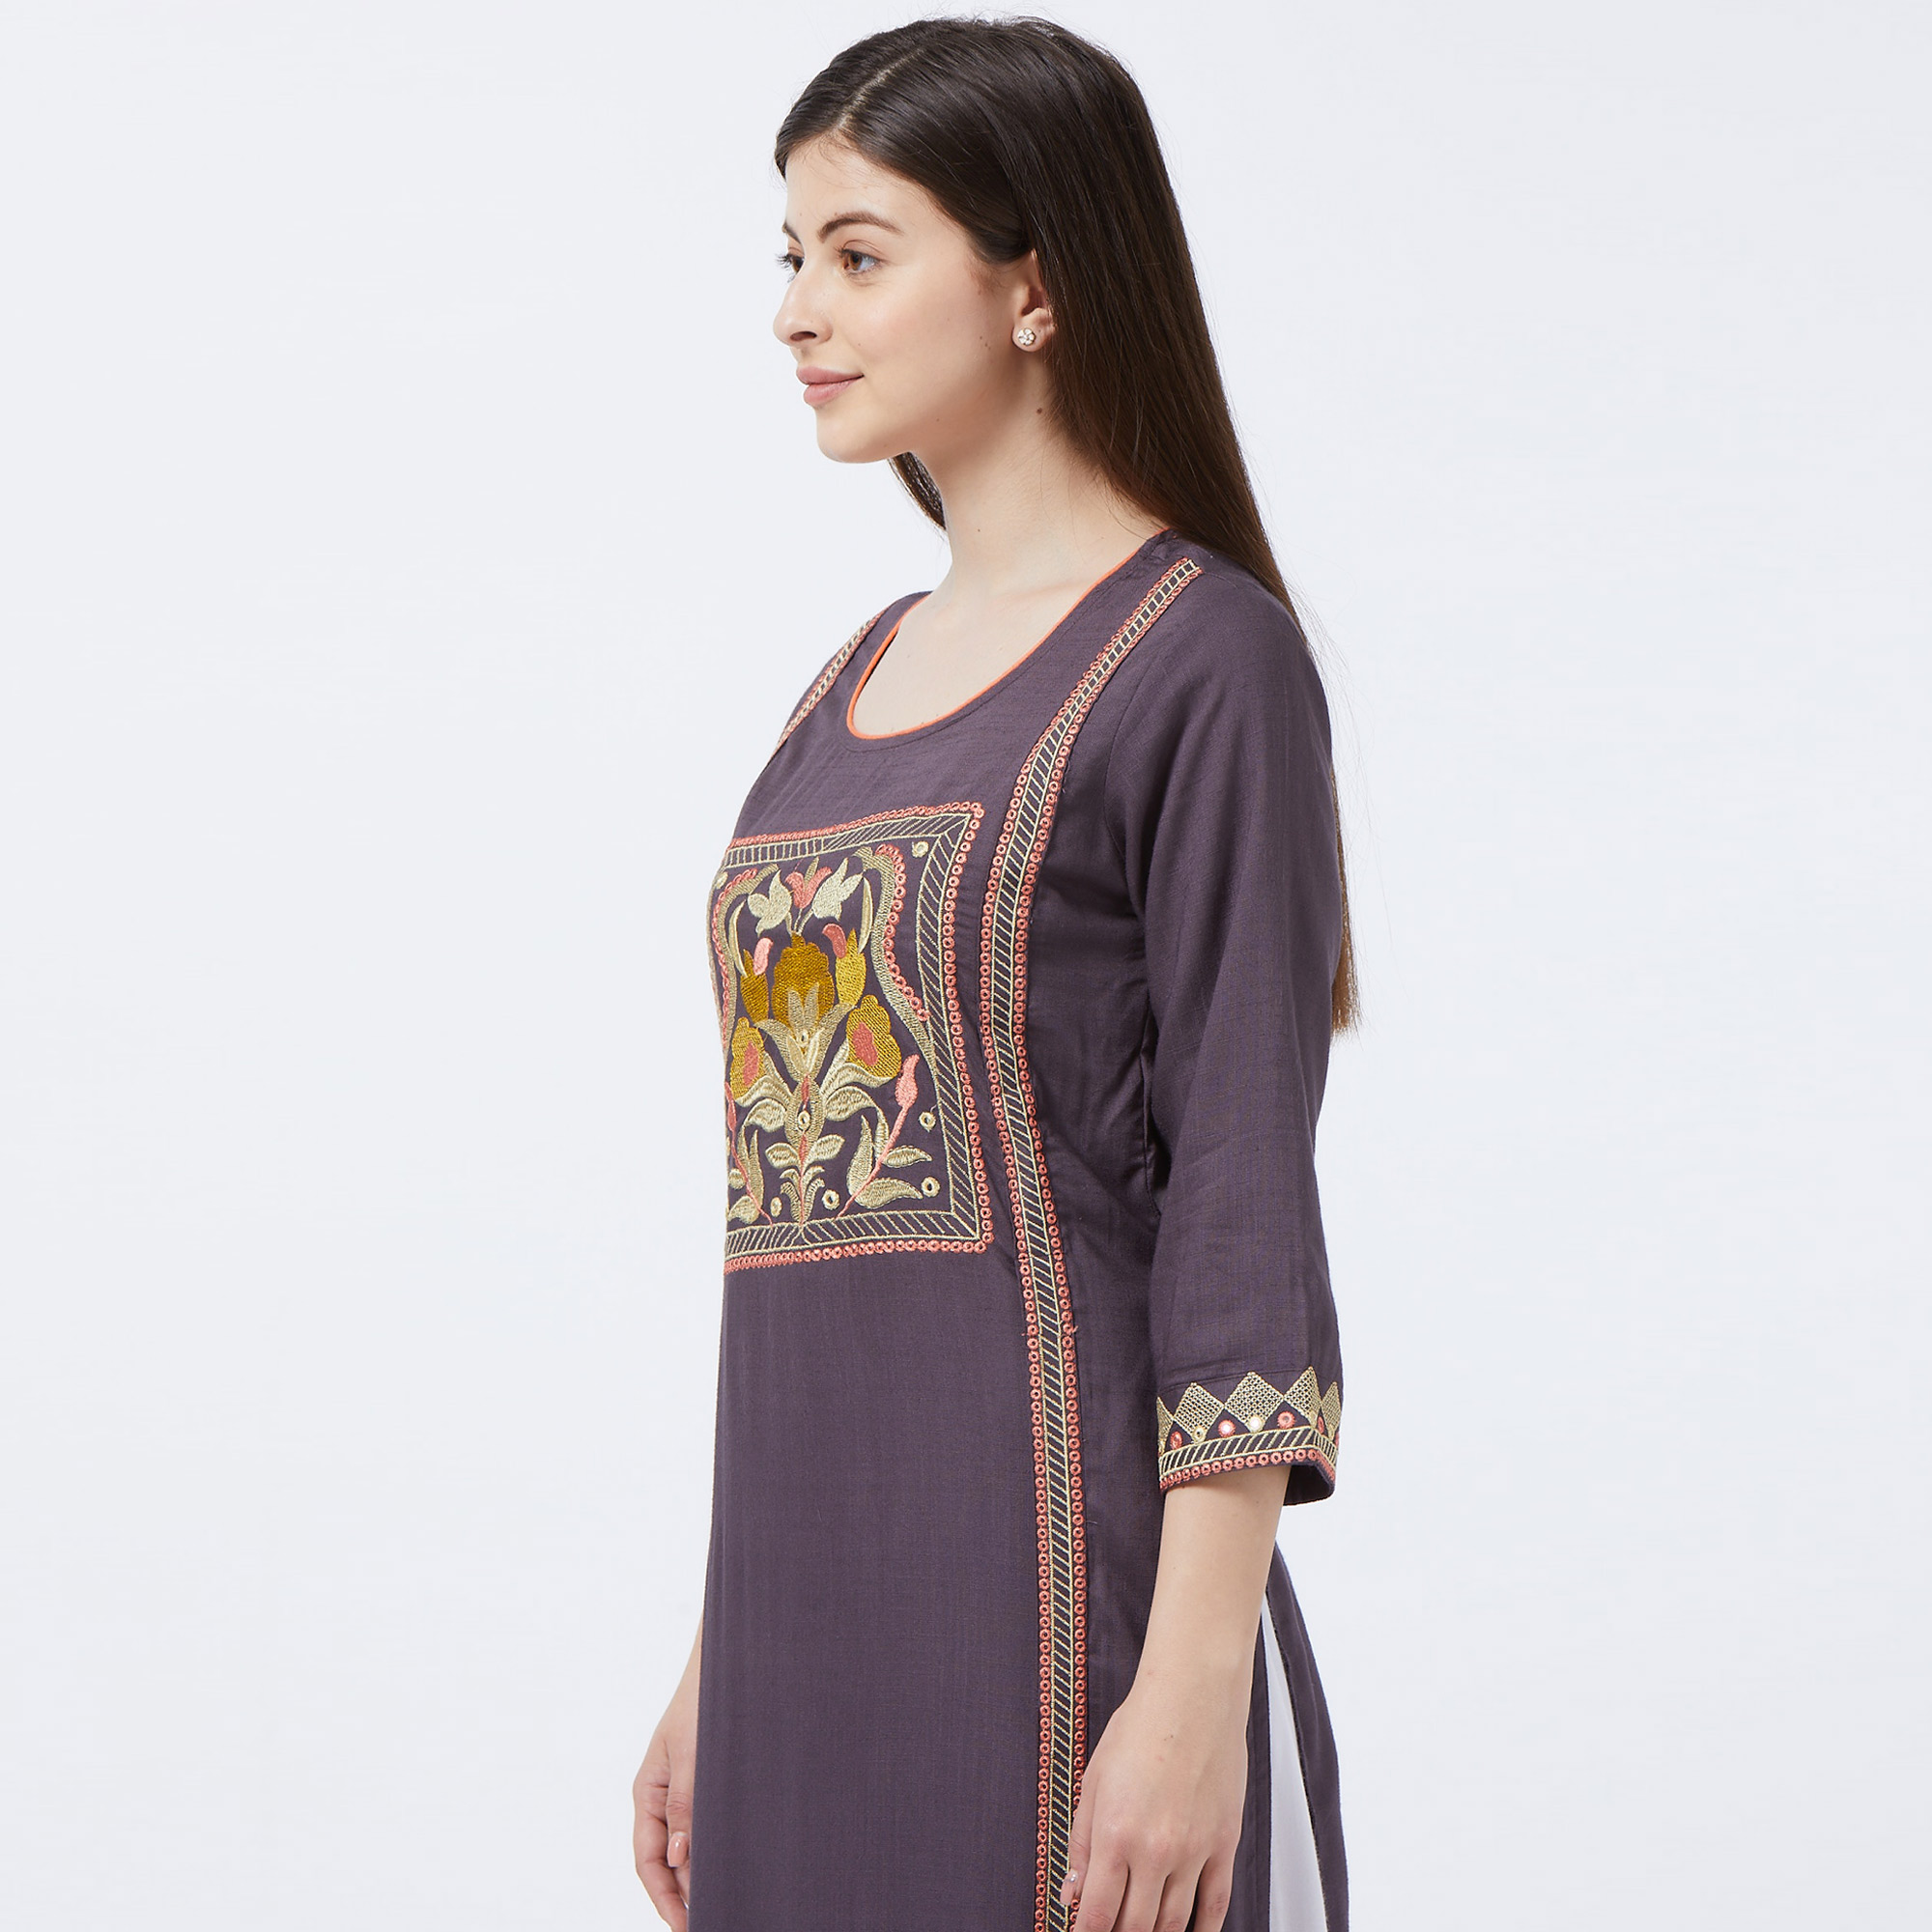 Ravishing Dark Gray Colored Partywear Embroidered Rayon Long Kurti